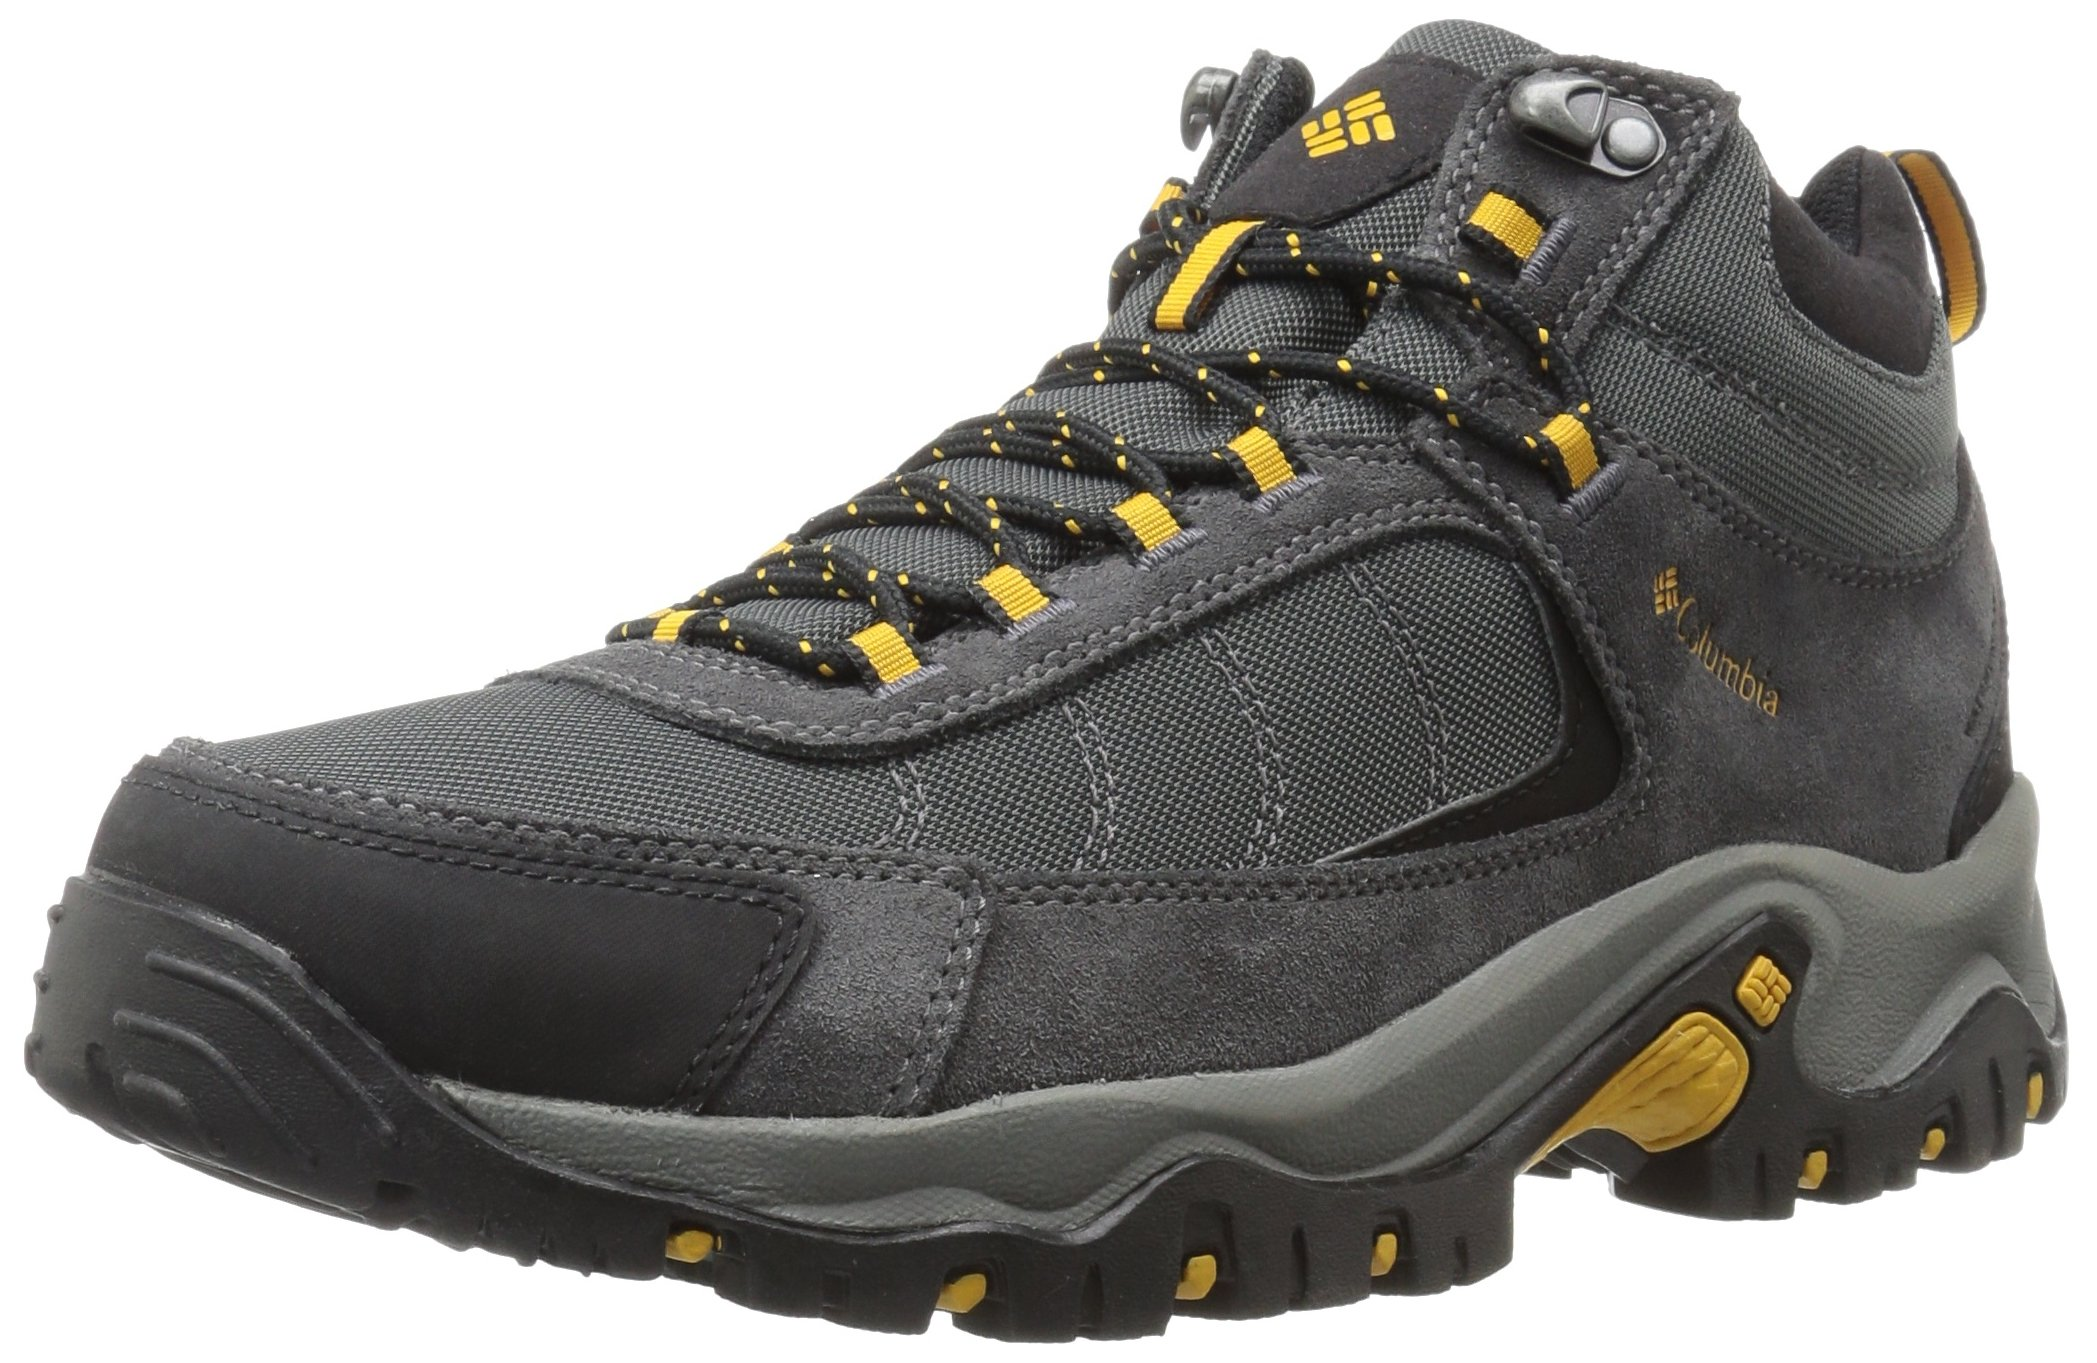 Columbia Men's GRANITE RIDGE MID WATERPROOF Hiking Shoe, Dark Grey, Golden Yellow, 9.5 D US by Columbia